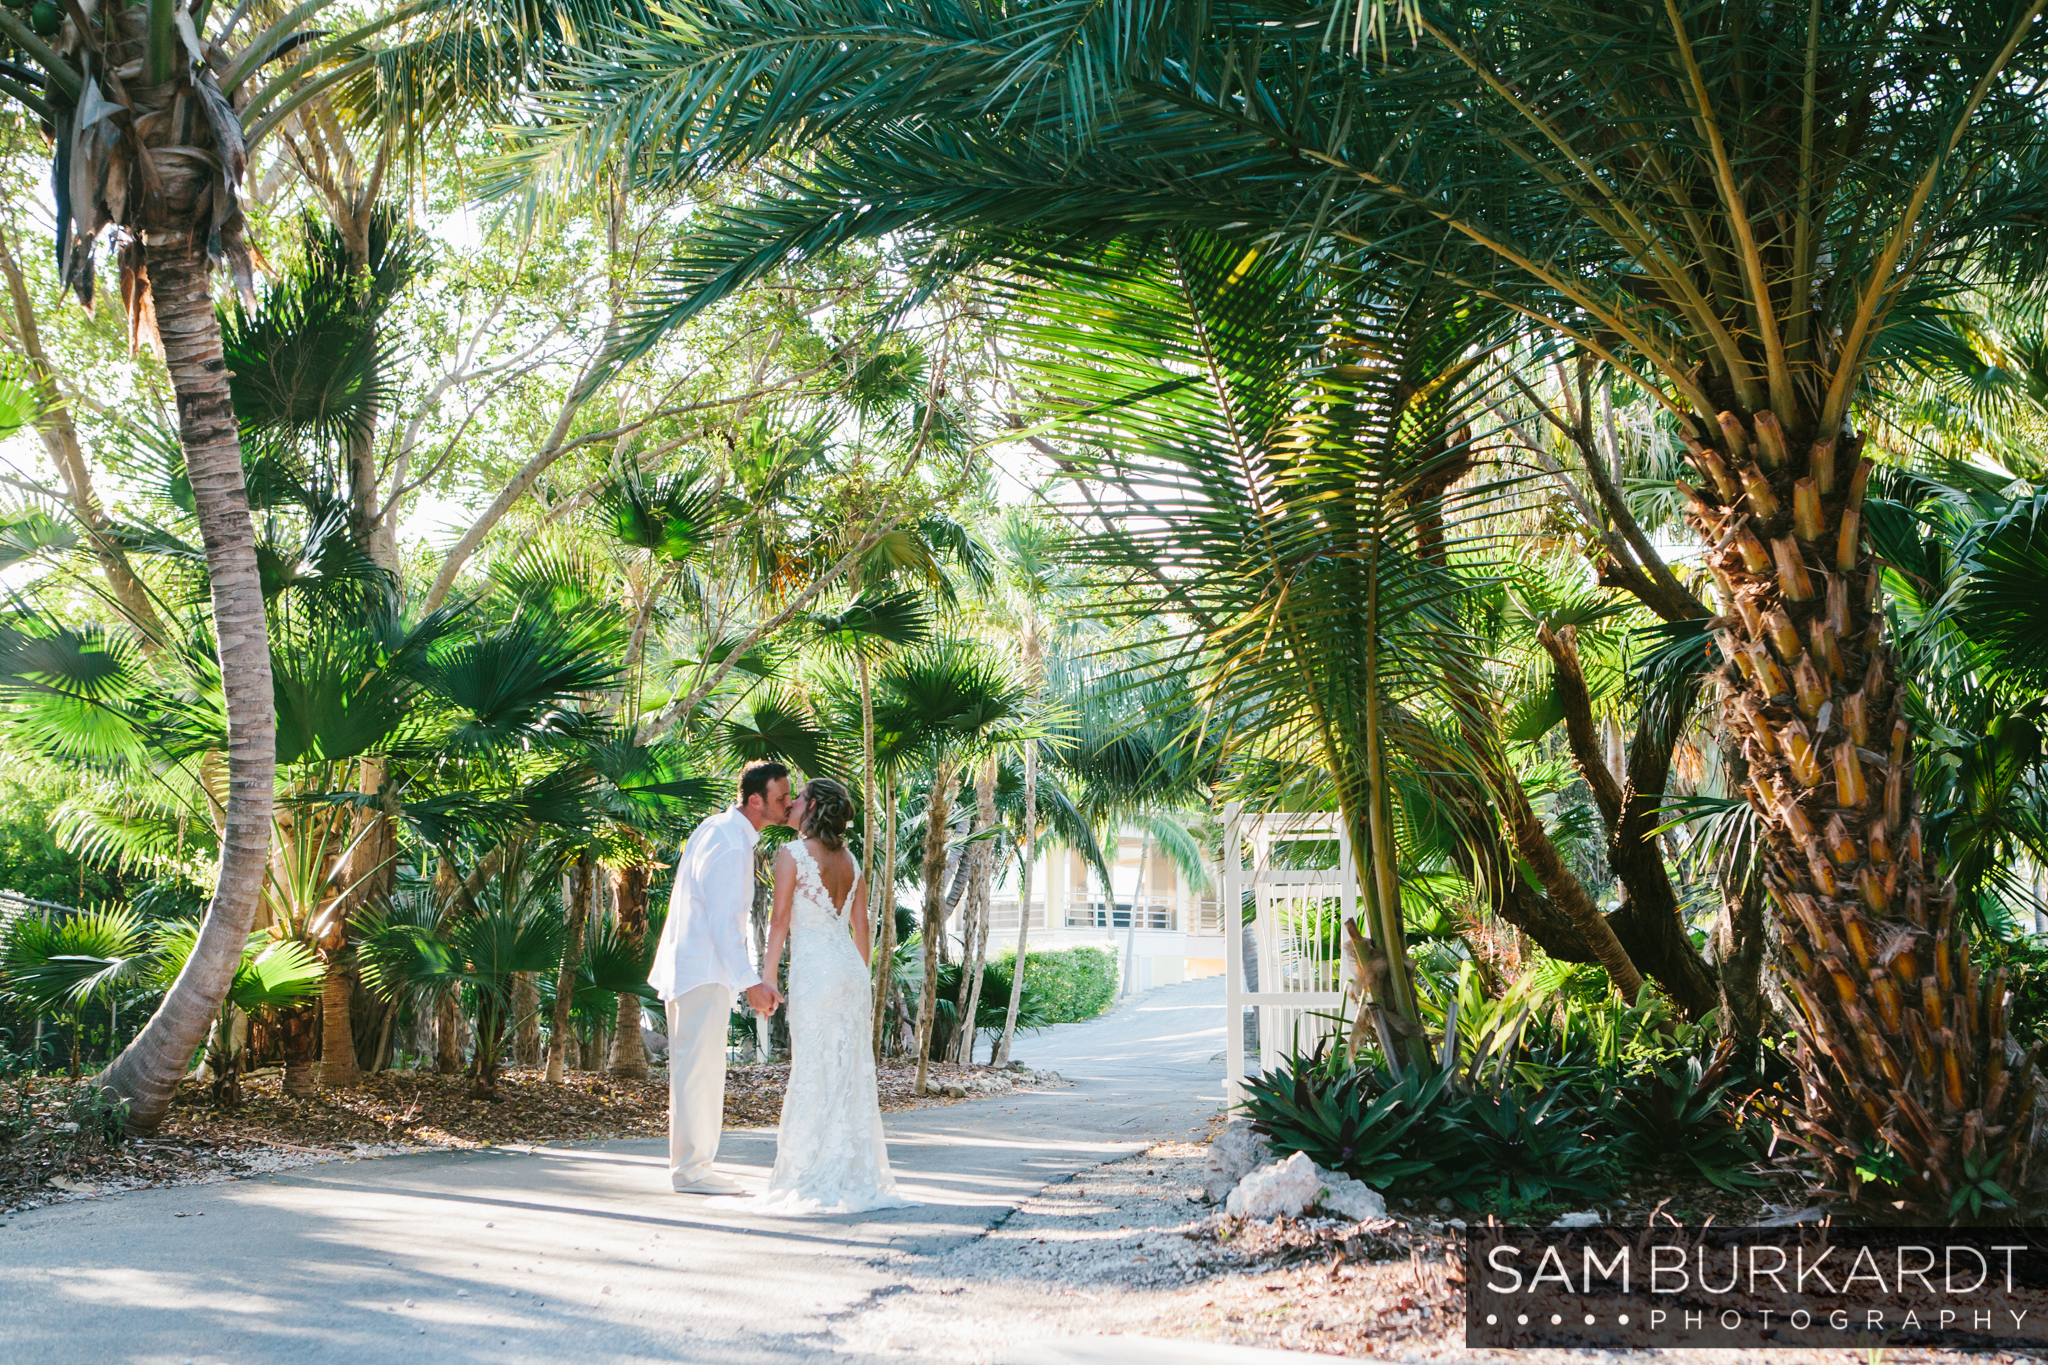 samburkardt_key_west_wedding_marathon_florida_summer_beach_ocean_front_0050.jpg